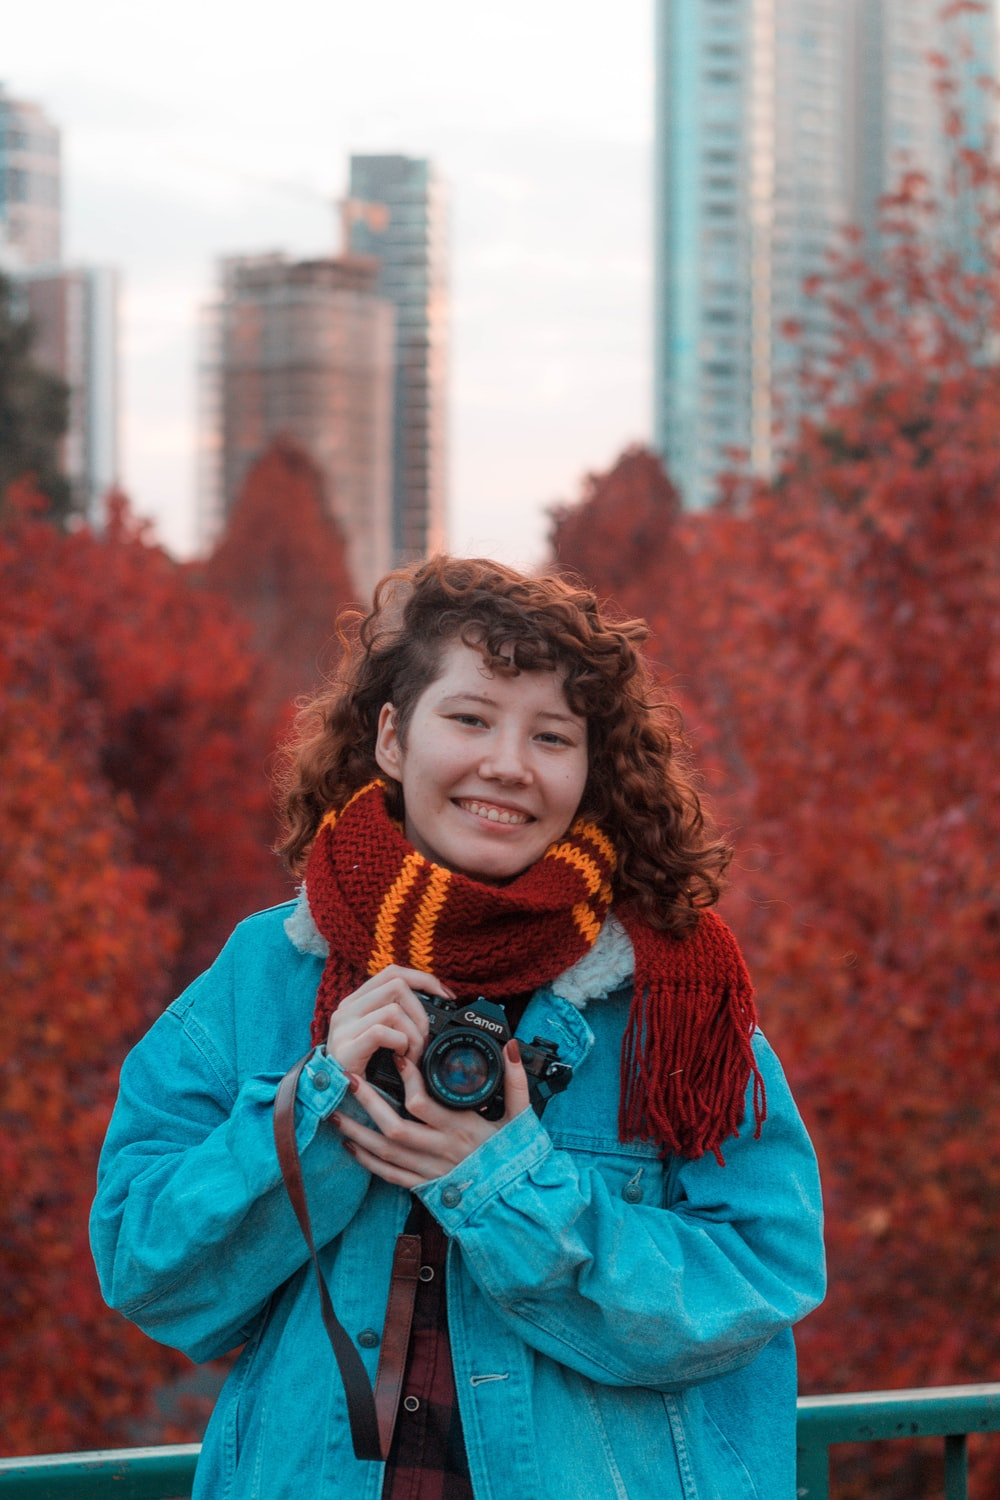 woman in blue jacket holding black camera